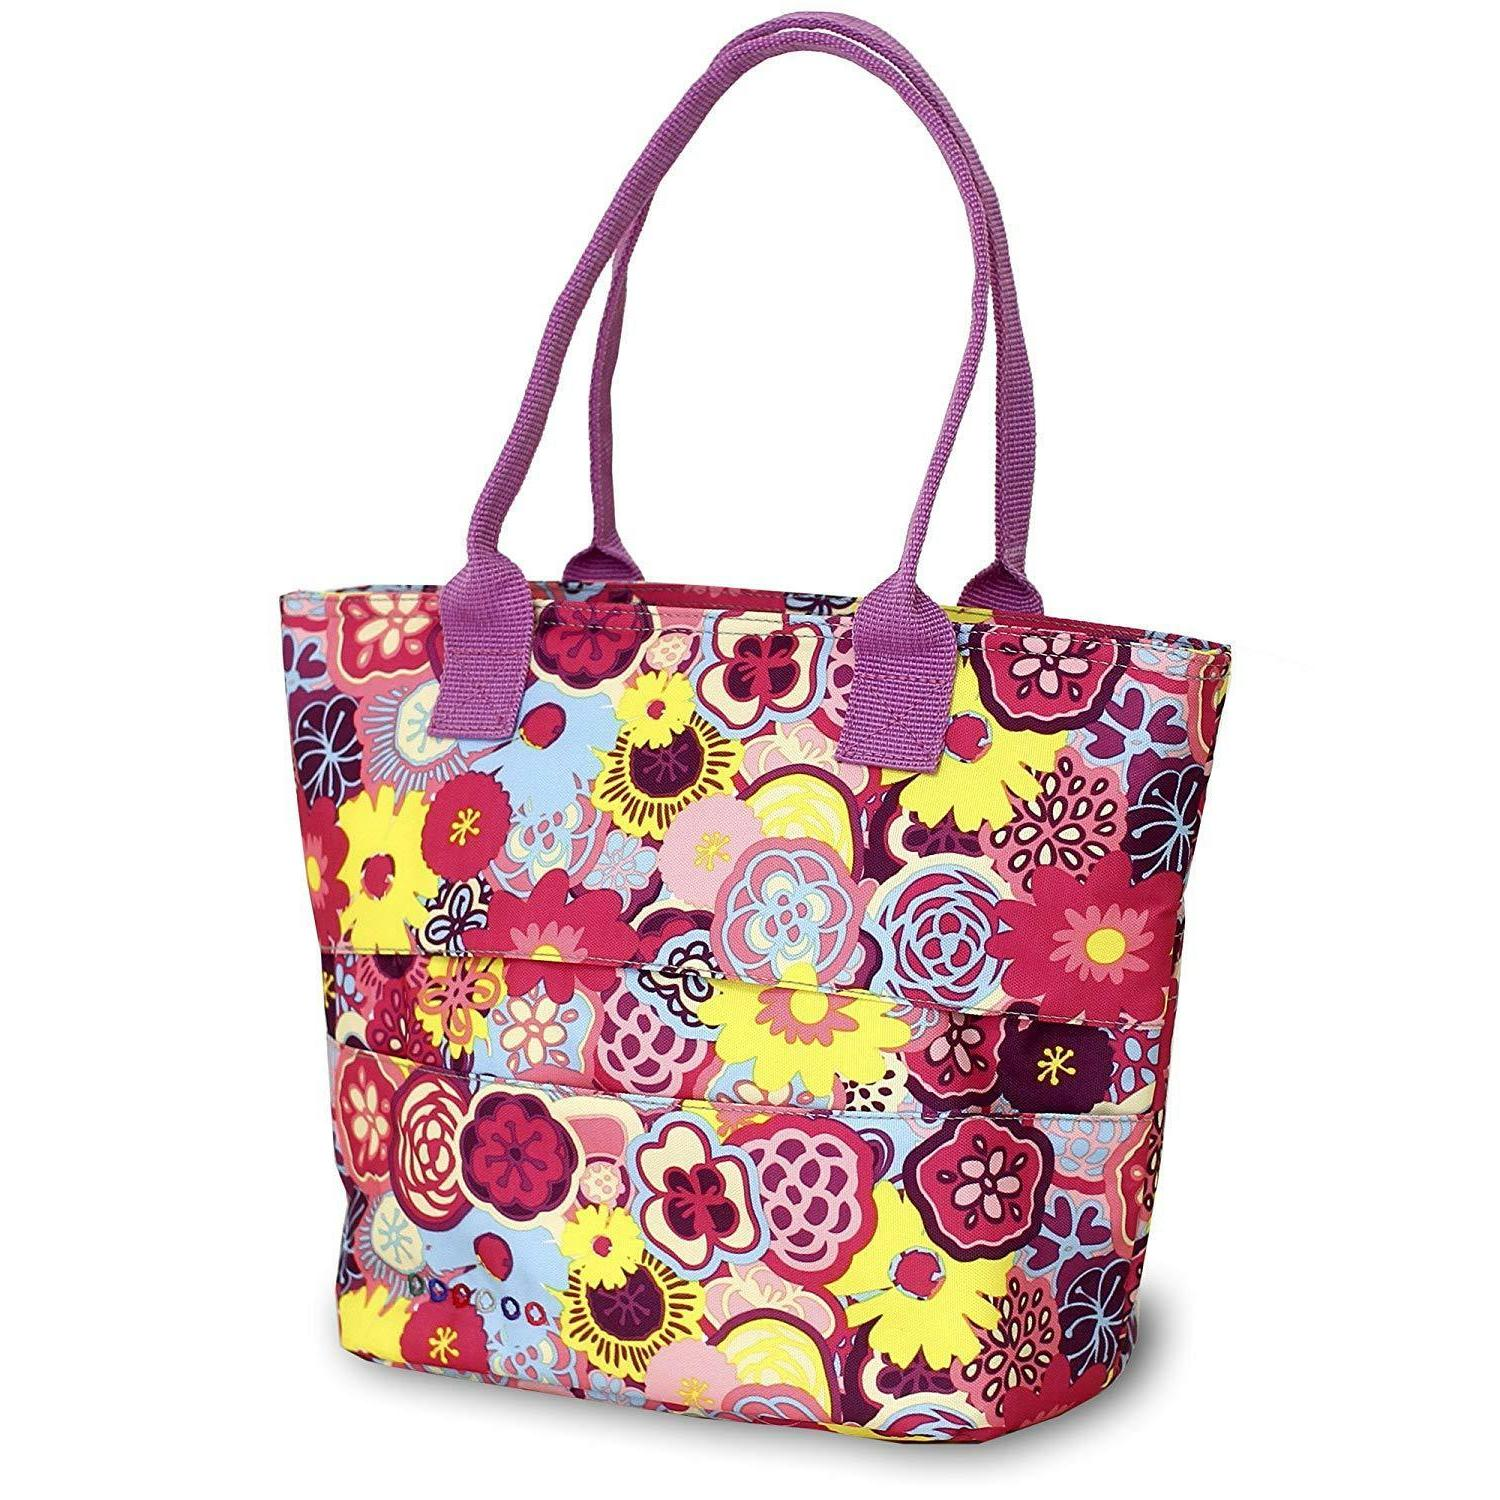 J World New York Lola Insulated Lunch Tote